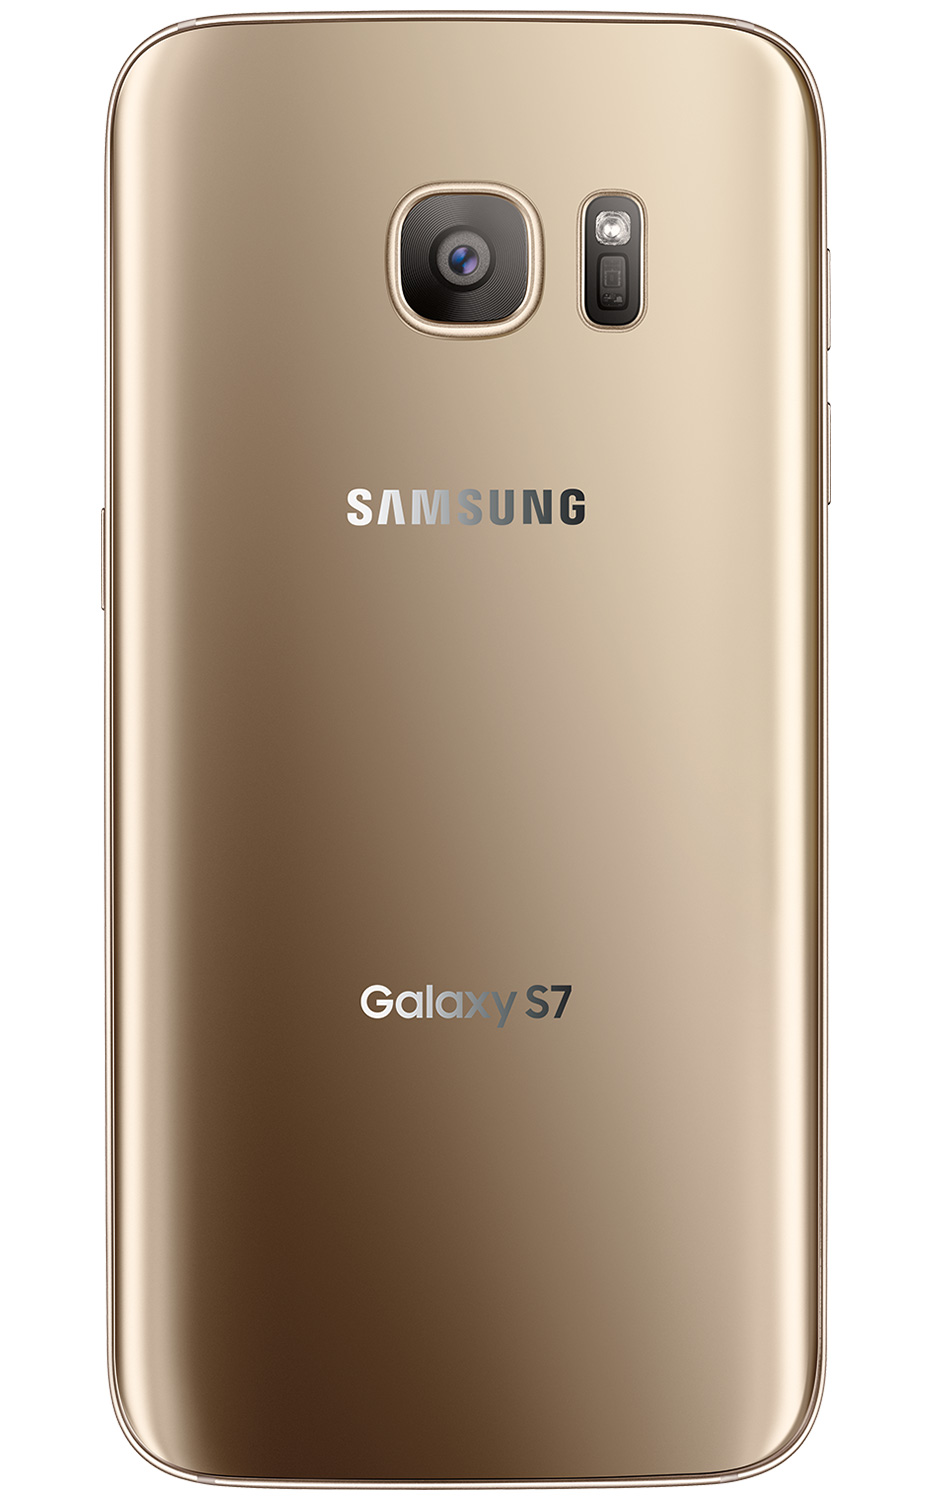 samsung galaxy s7 edge review and price 2018 dodge reviews. Black Bedroom Furniture Sets. Home Design Ideas